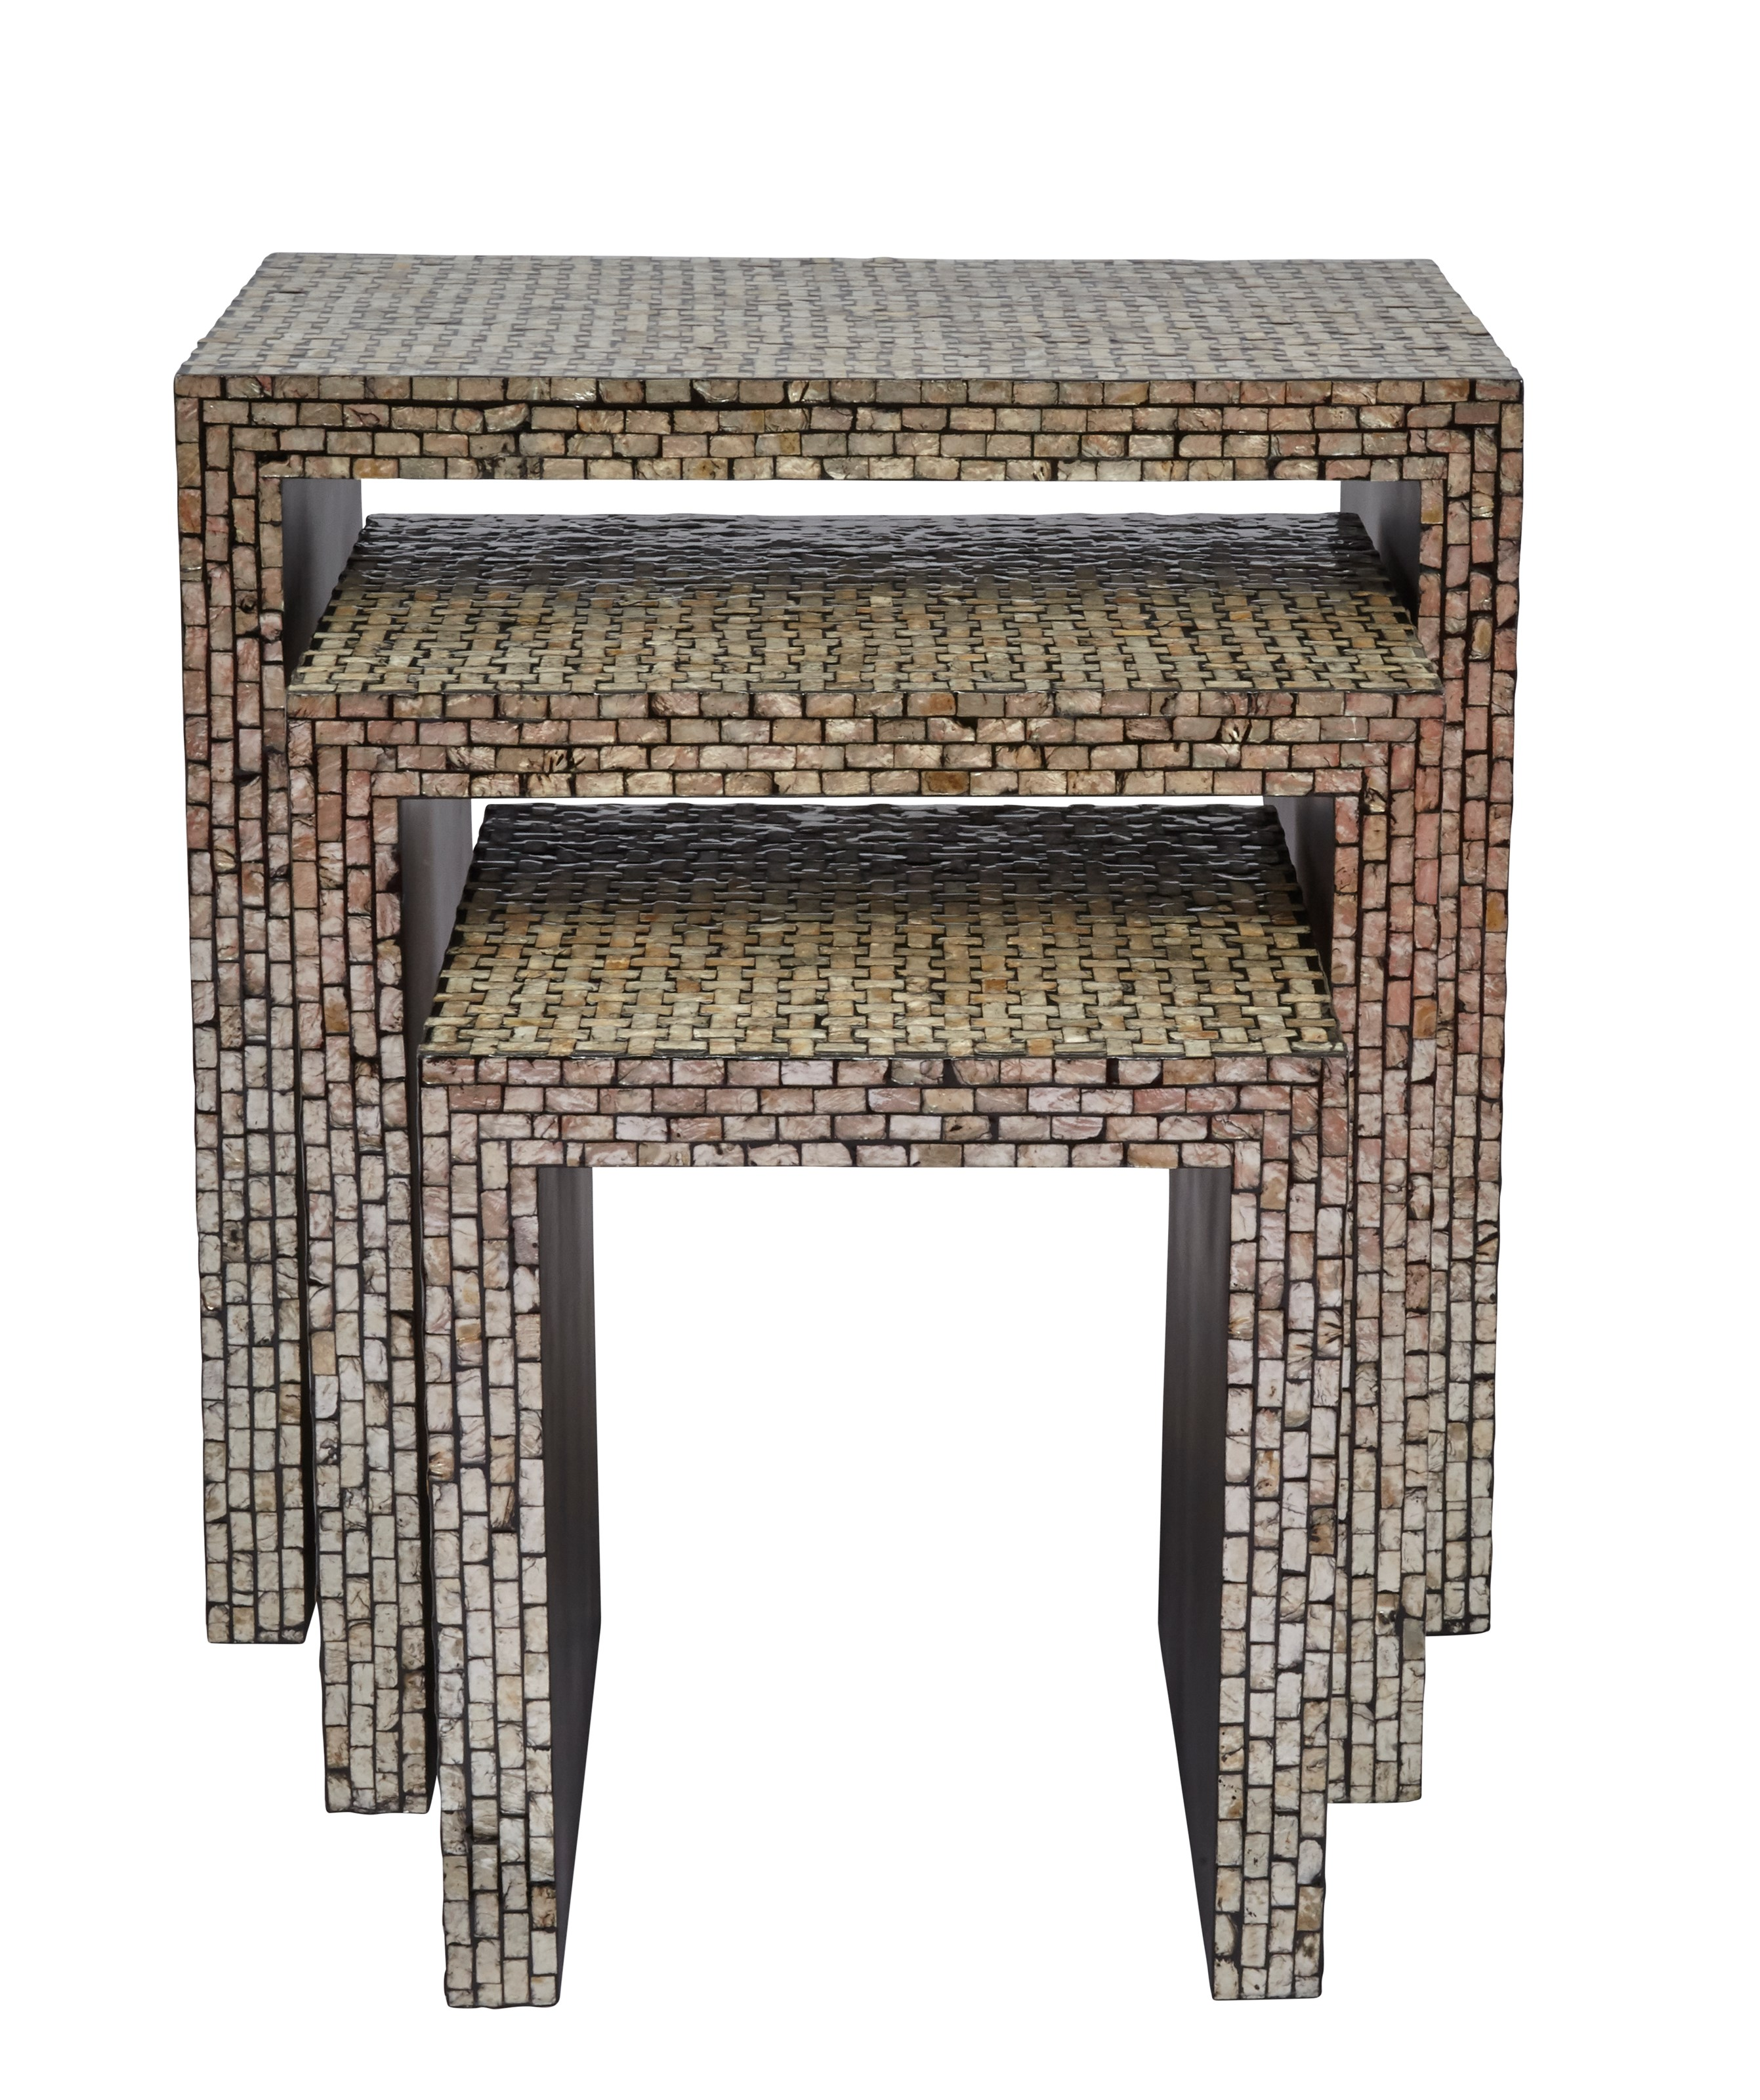 Set of 3 Capiz Basket Weave Nesting Tables